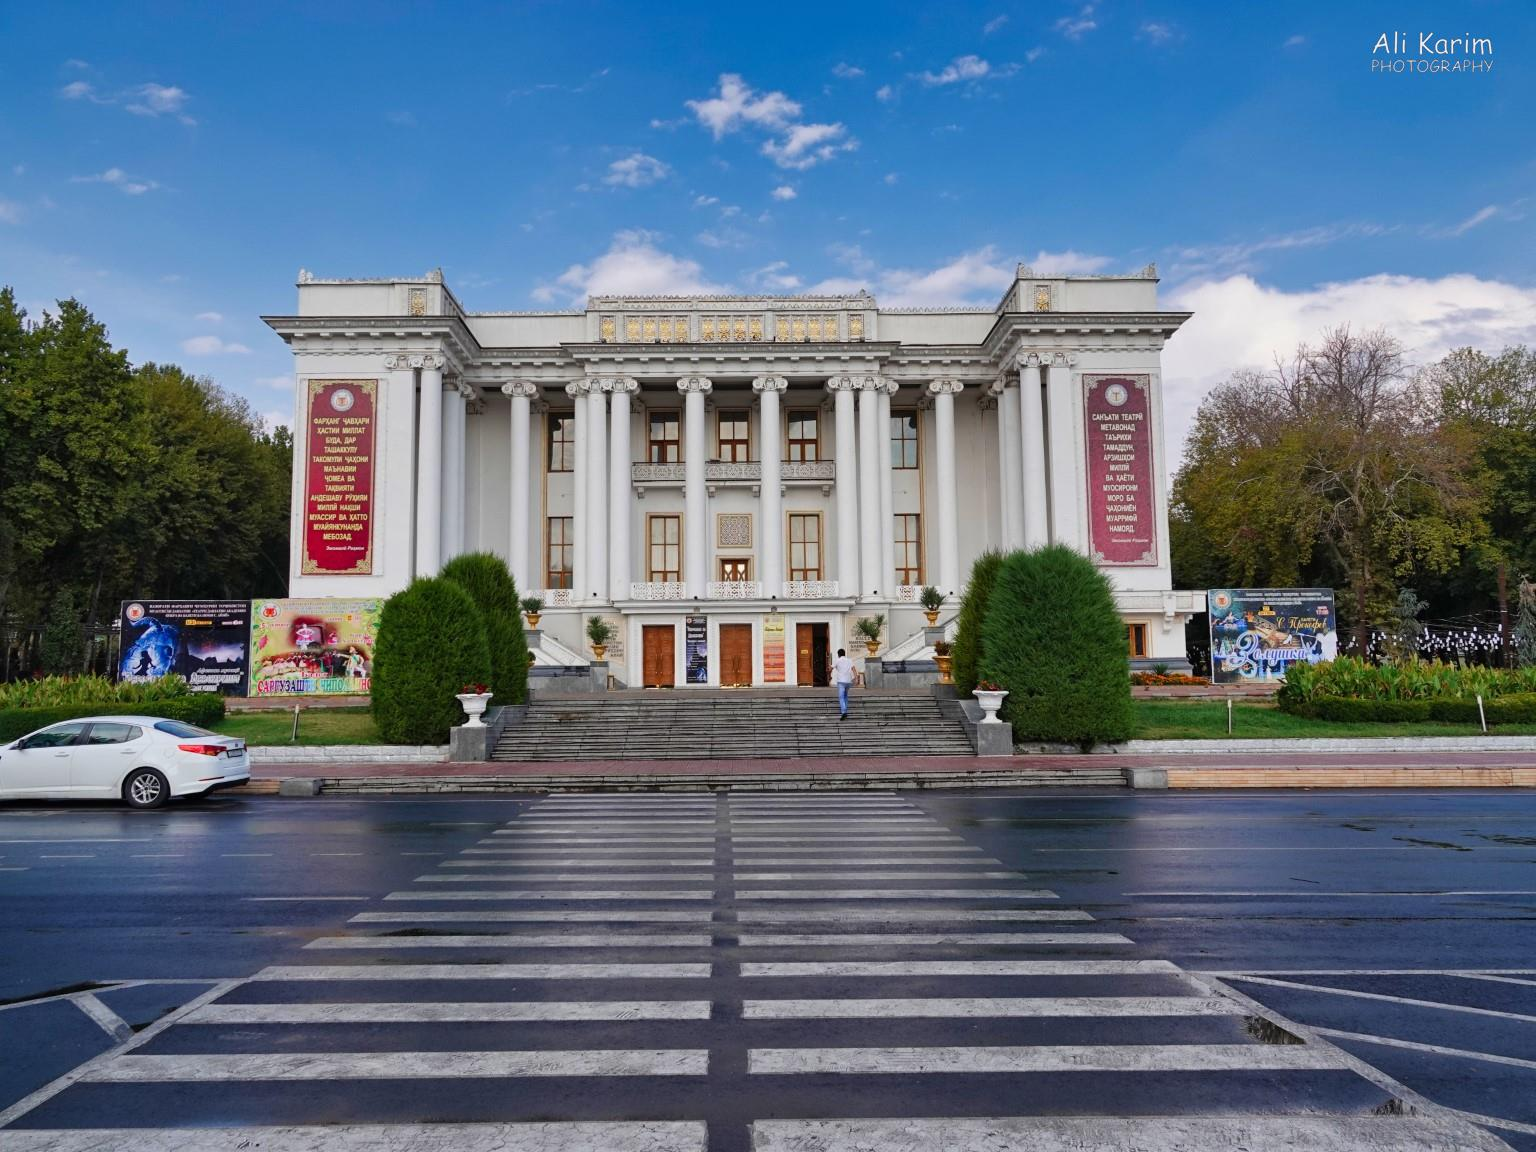 More Dushanbe, Tajikistan The majestic Sadriddin Ayni Opera and Ballet center